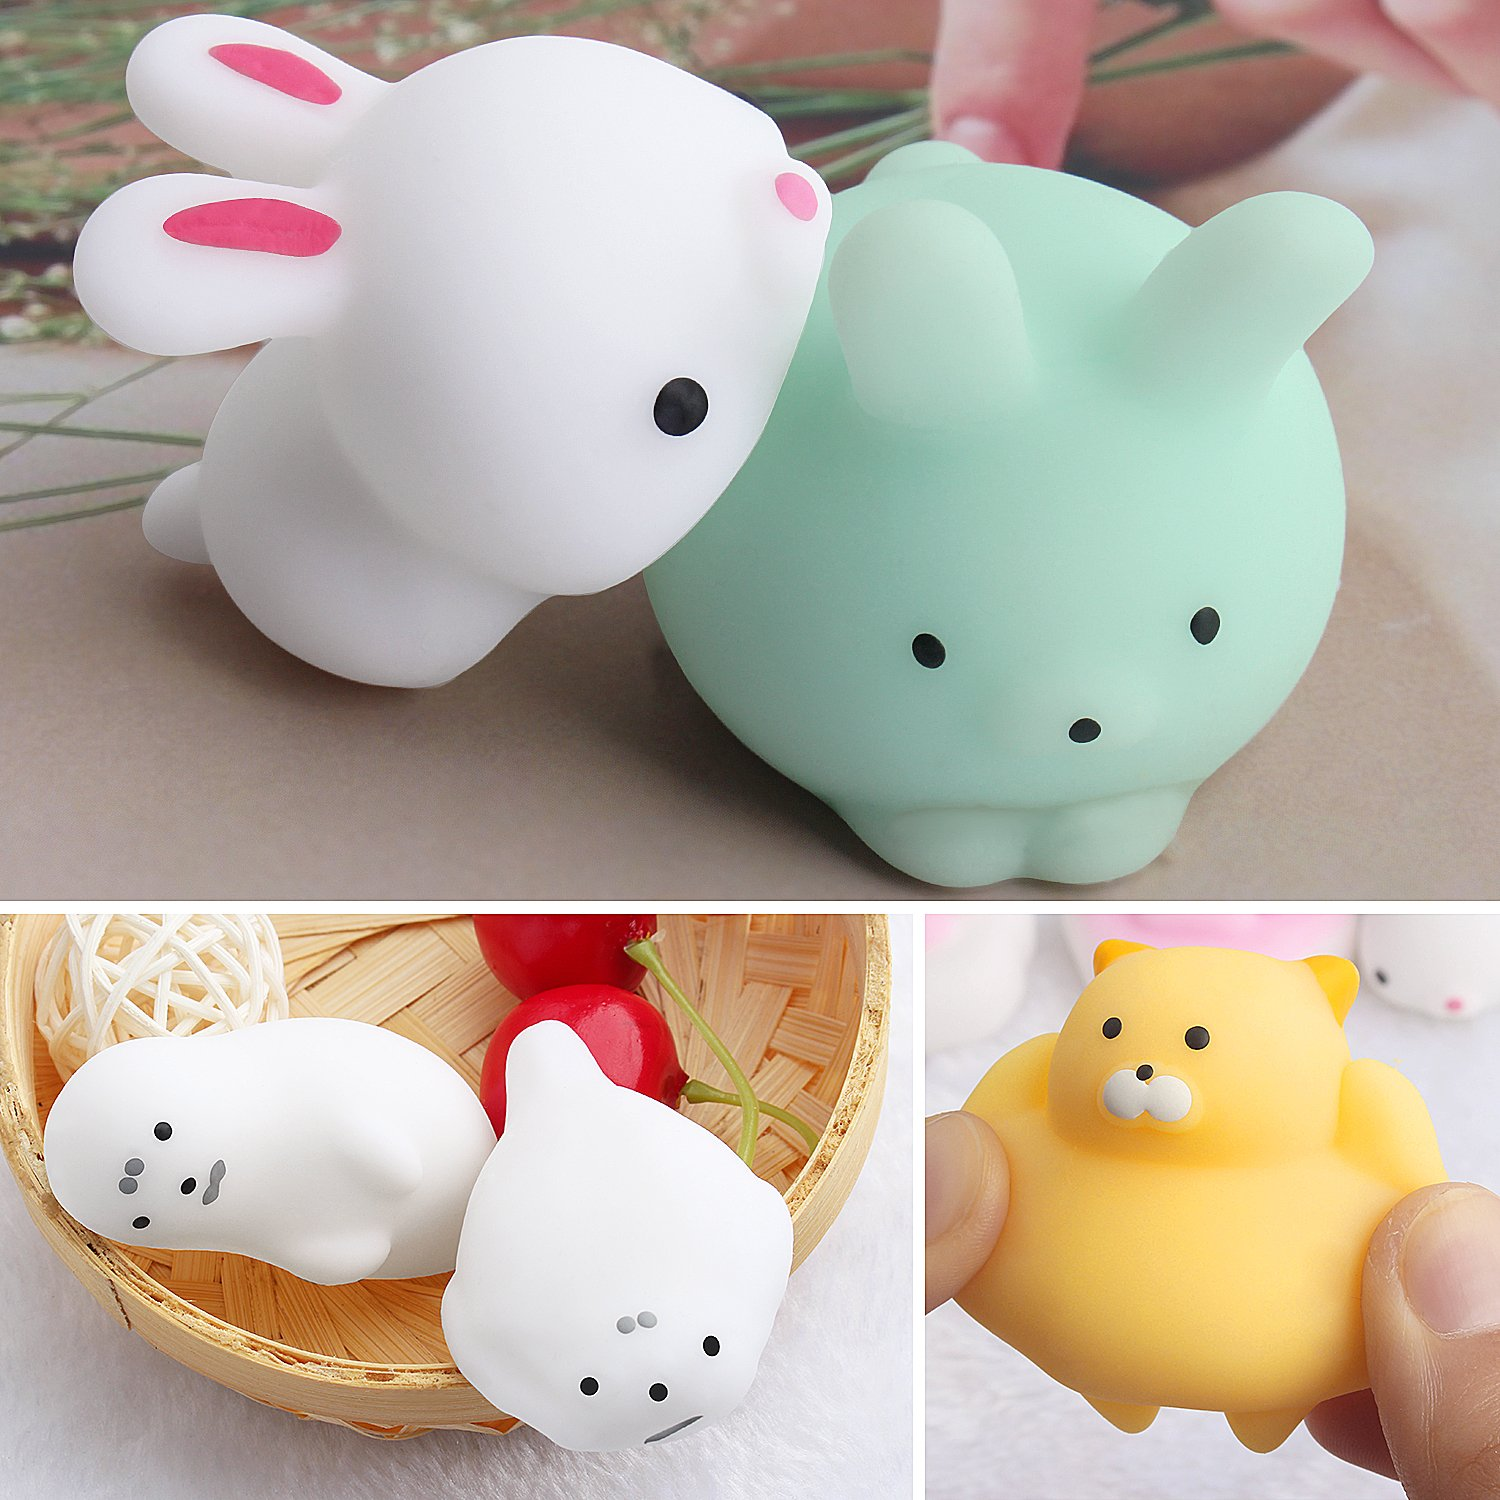 Outee Squishy Animals Toys, 20 Piezas Mochi Squishy Cat Toy Mochi Squeeze Squishy Kawaii Cat Squishy Mochi Toy Alivio de Estrés Juguetes de Animales Kawaii ...